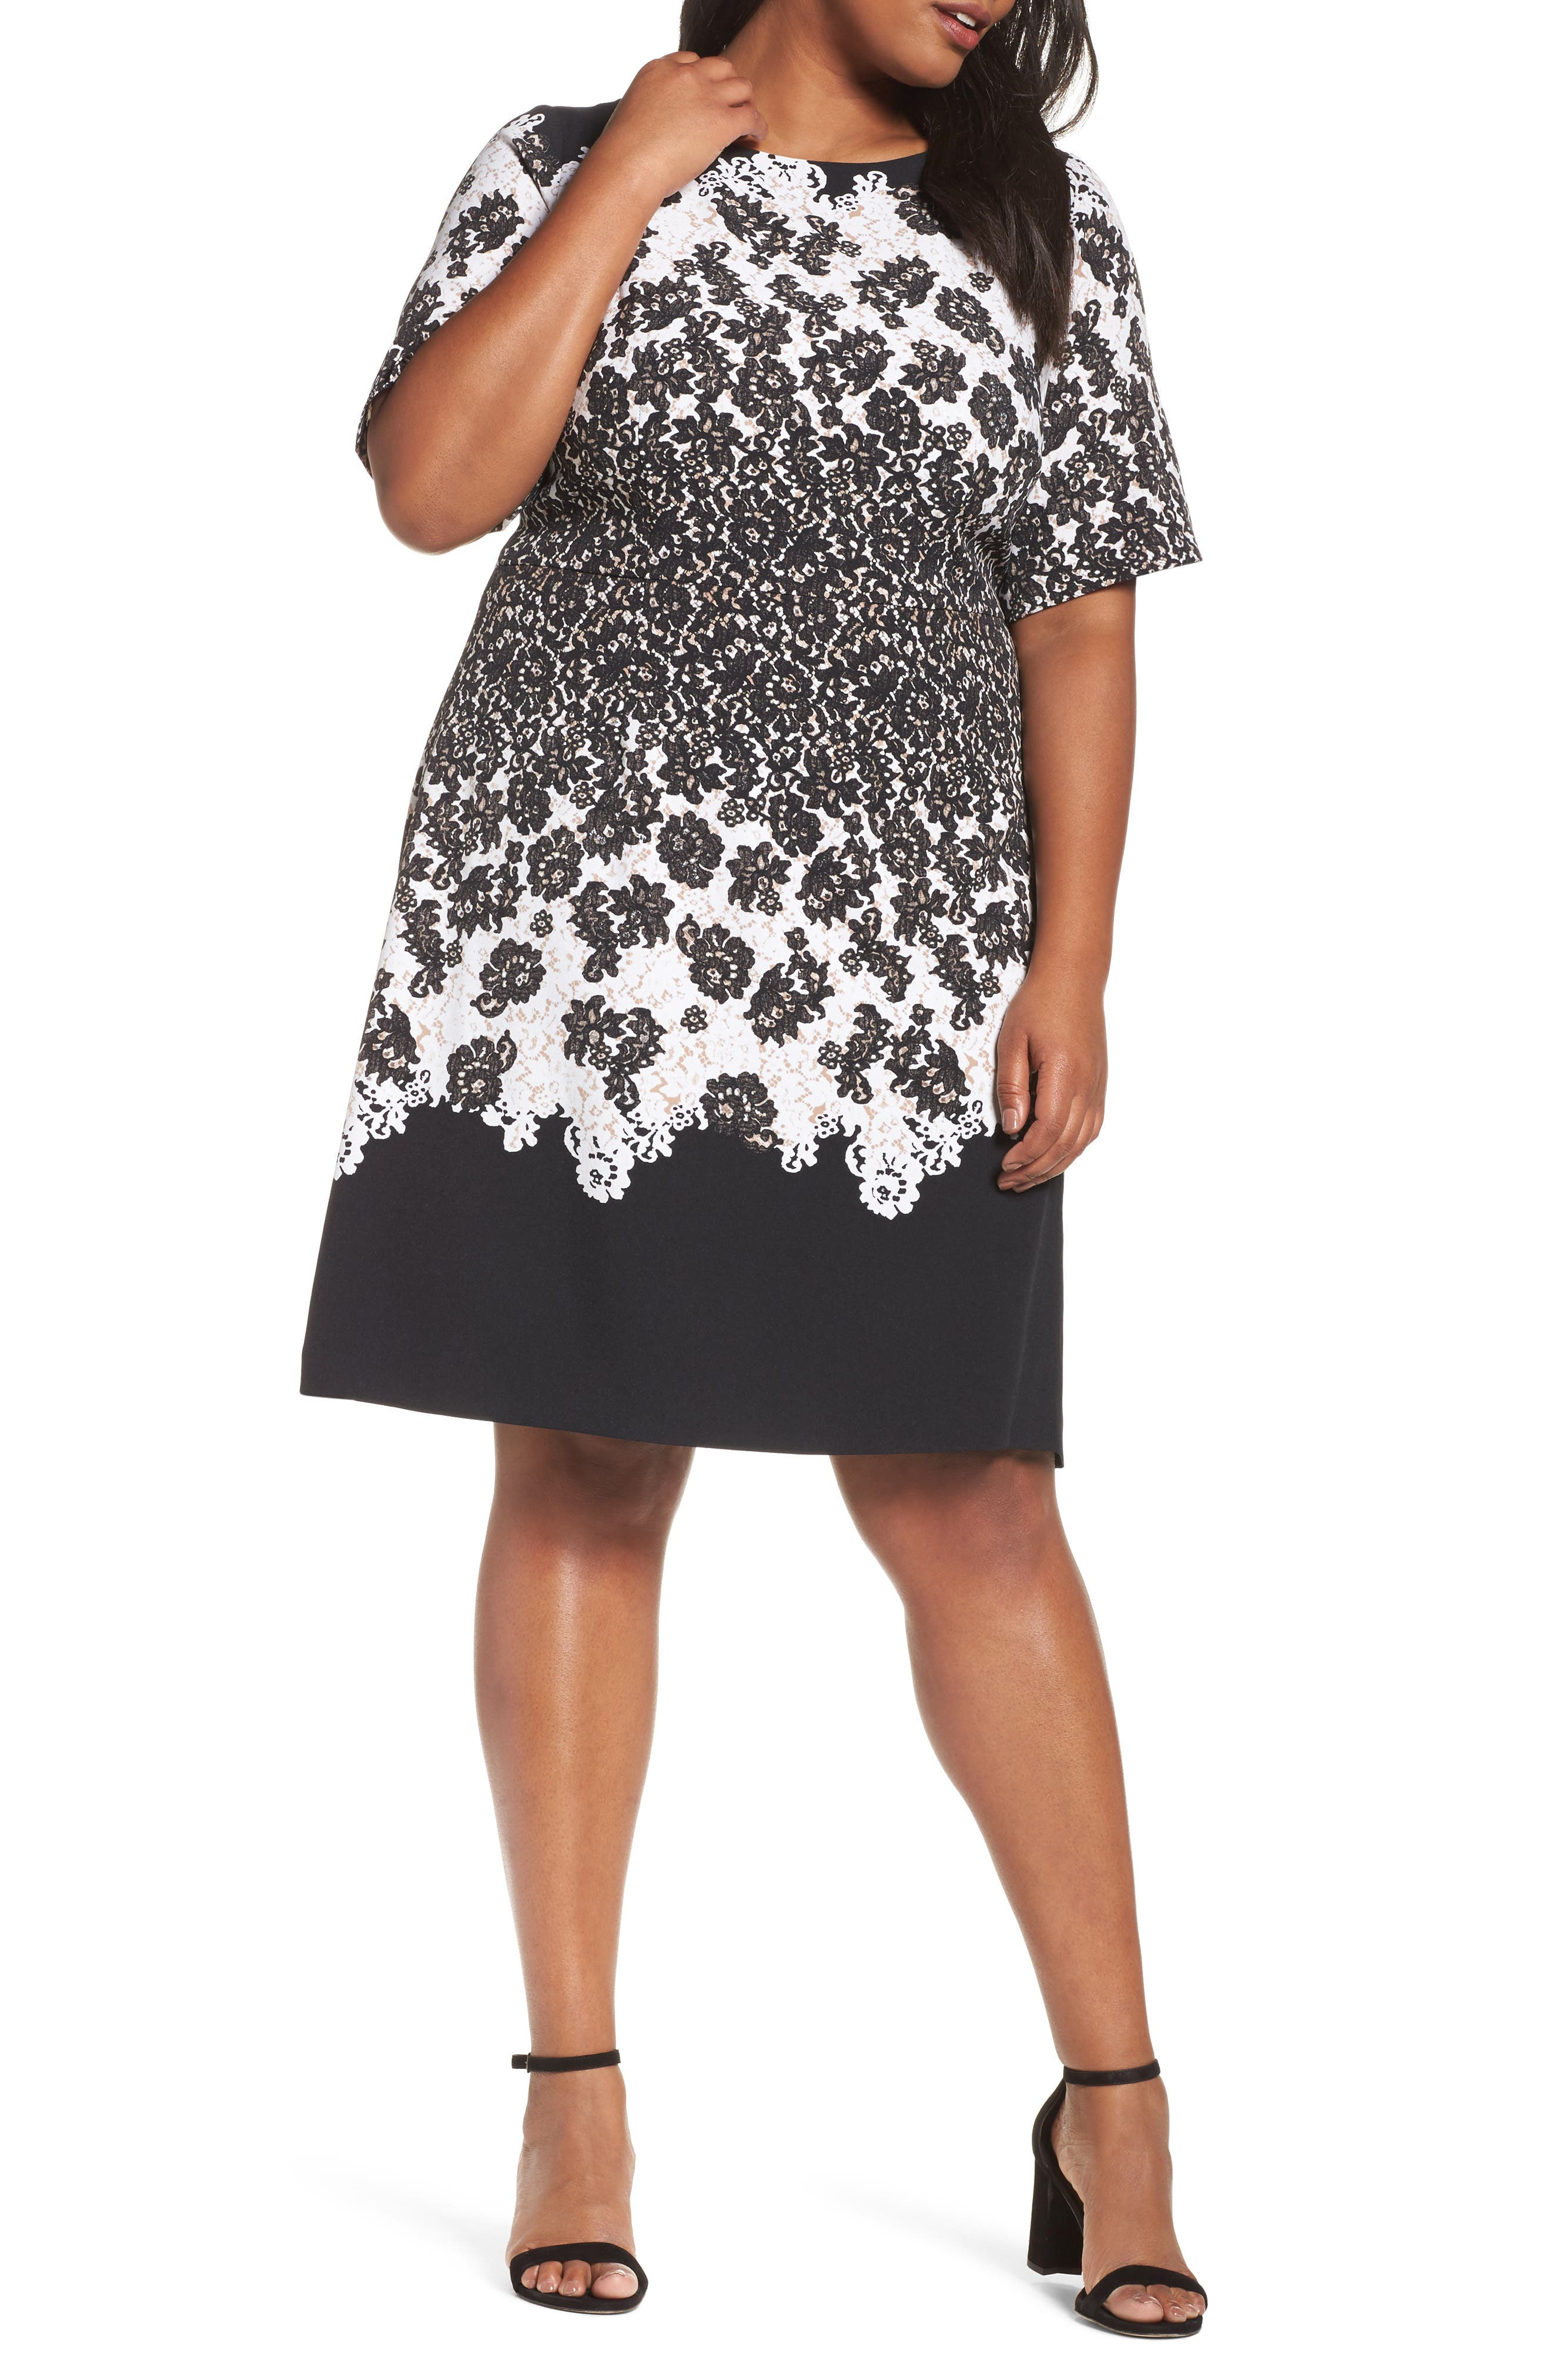 Alternate Image 1 Selected - Adrianna Papell Lace Print Fit & Flare Dress (Plus Size)